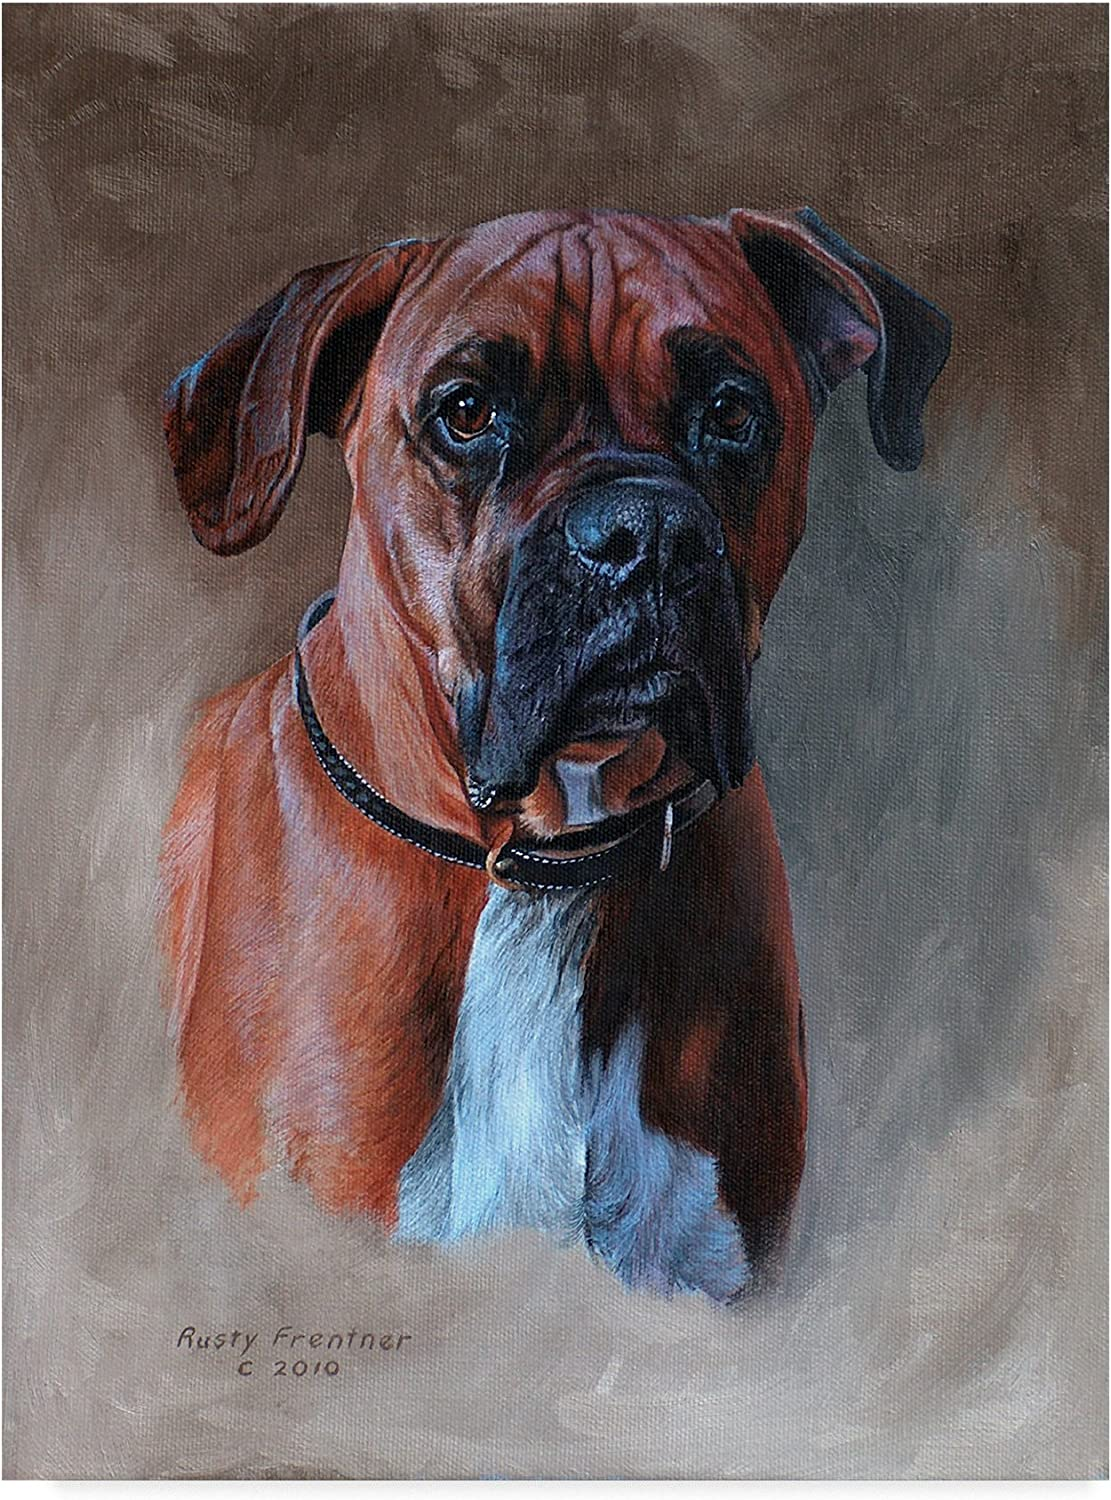 Jake by Rusty Frentner, 14x19Inch